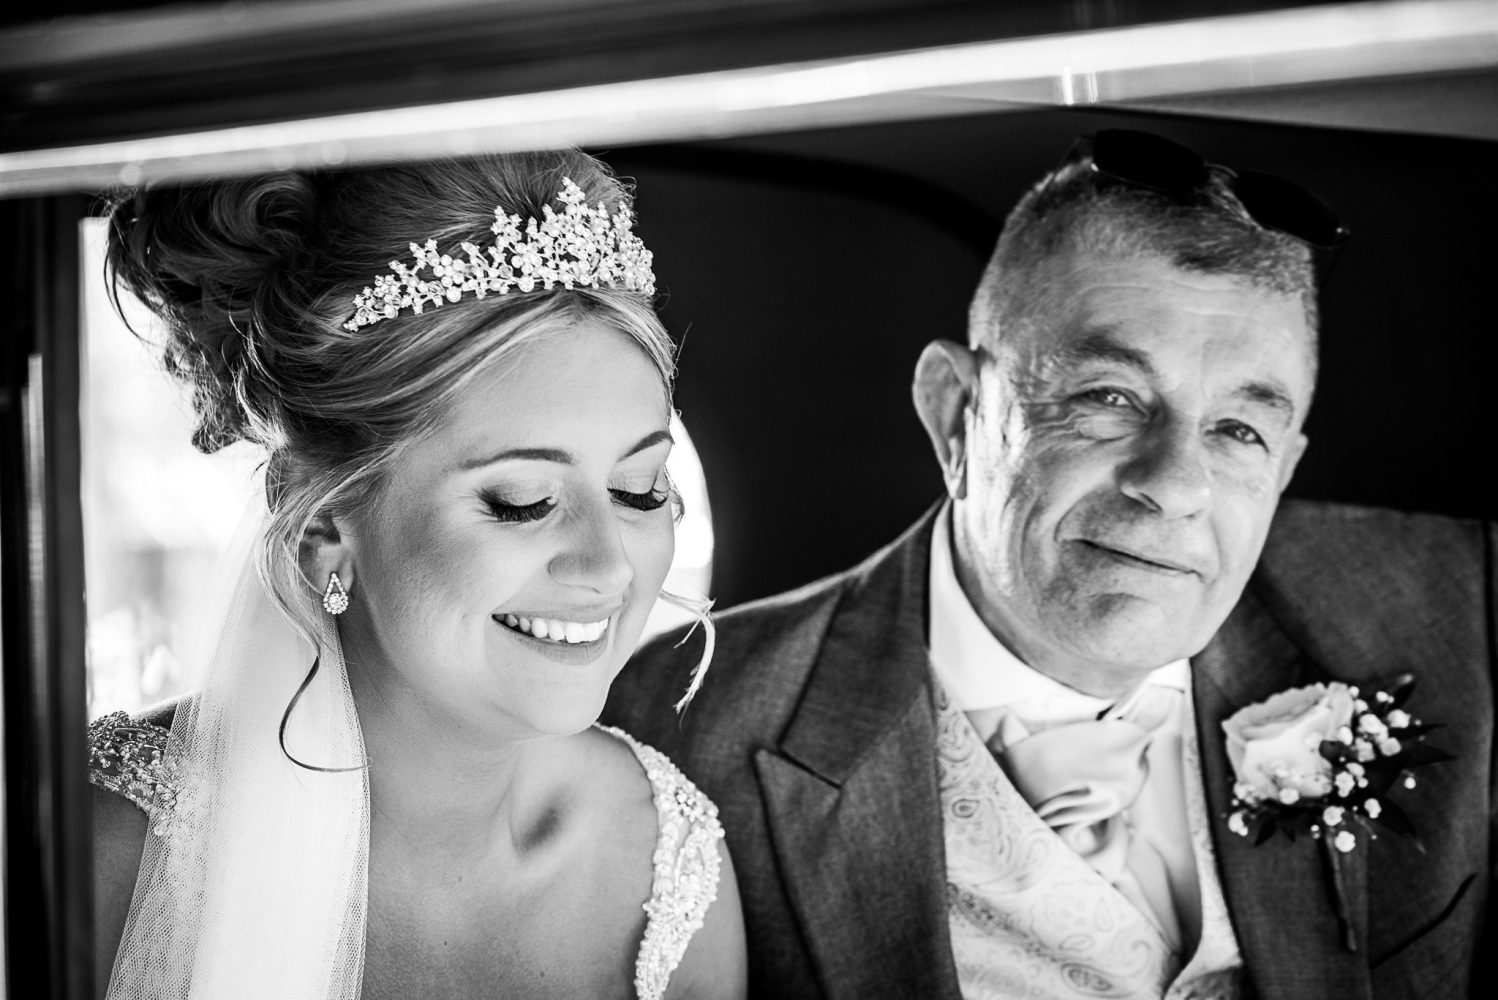 proud father in the wedding car with the bride